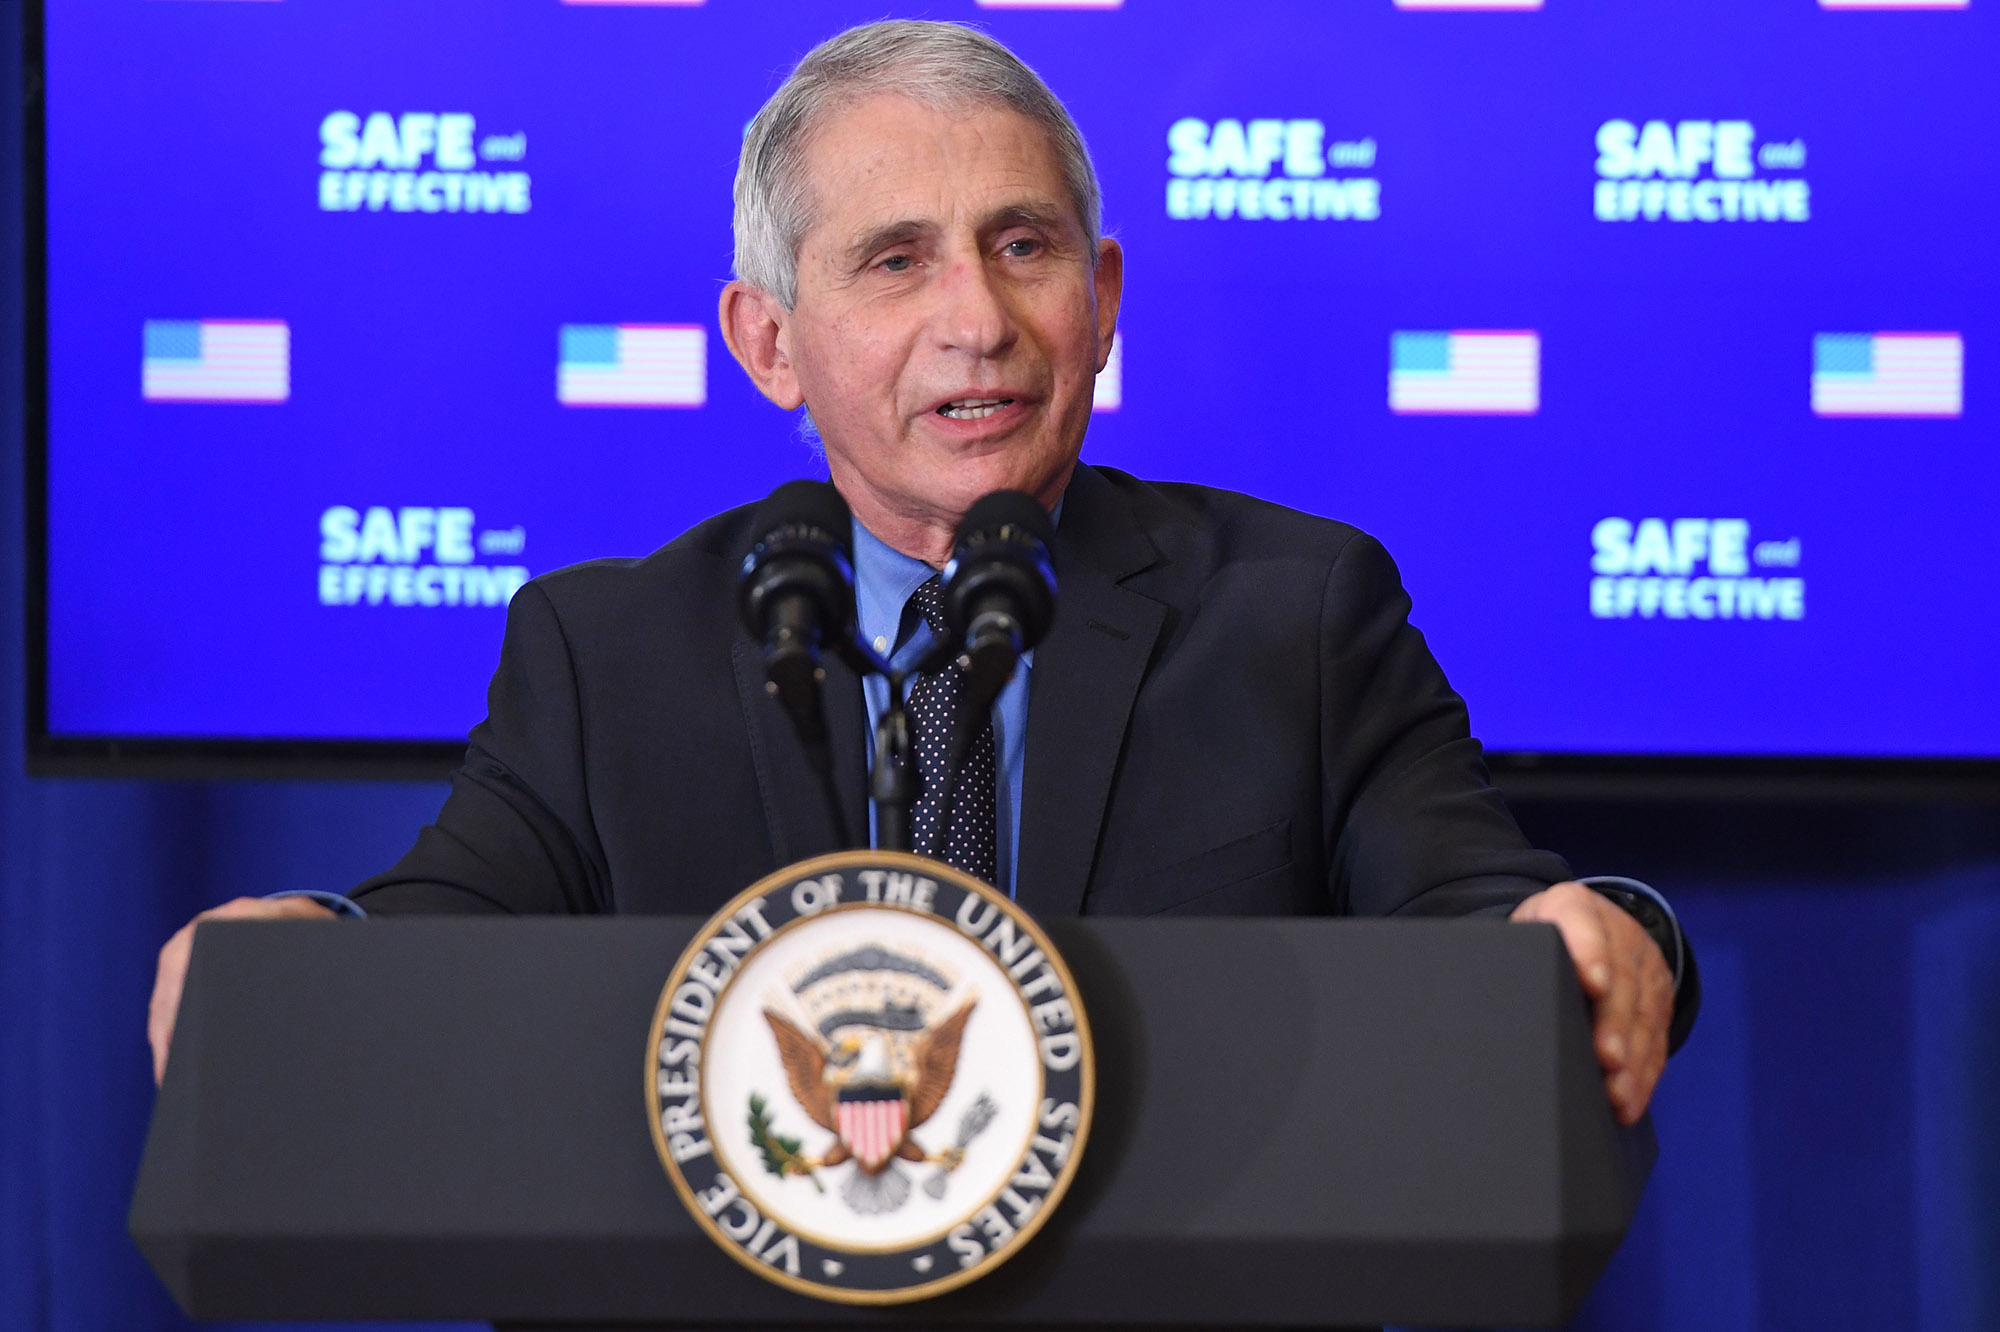 Director of the National Institute of Allergy and Infectious Diseases Anthony Fauci speaks at the Eisenhower Executive Office Building in Washington DC, December 18.